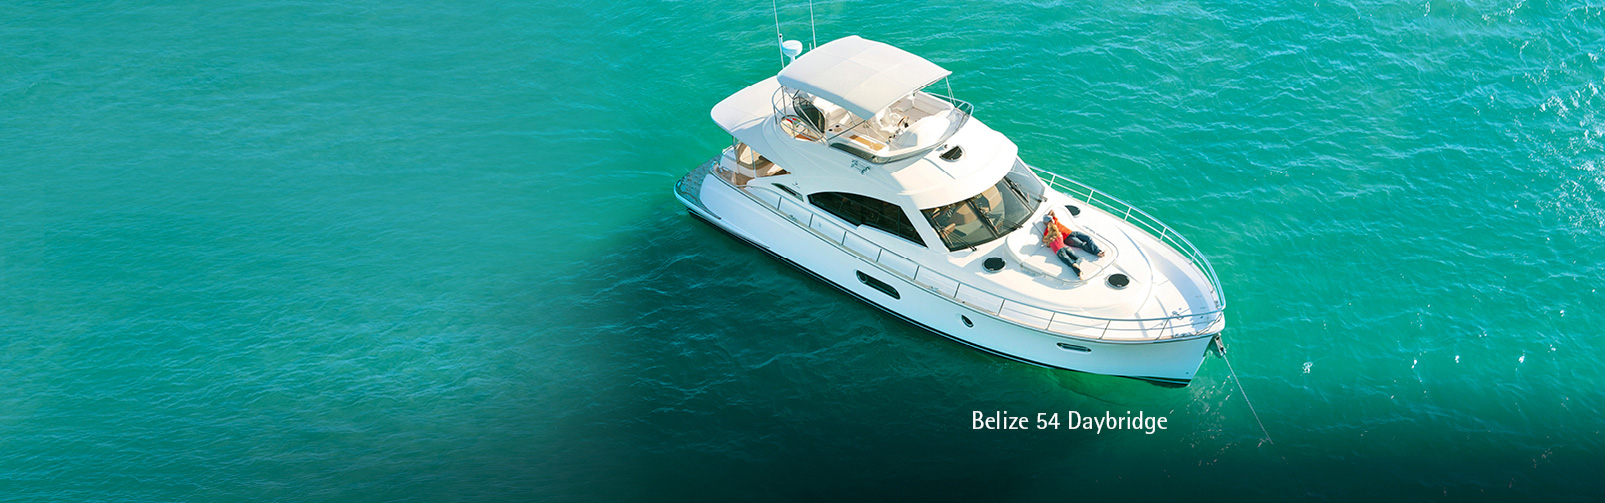 Belize Yachts for Sale - Belize Daybridge - Learn more!